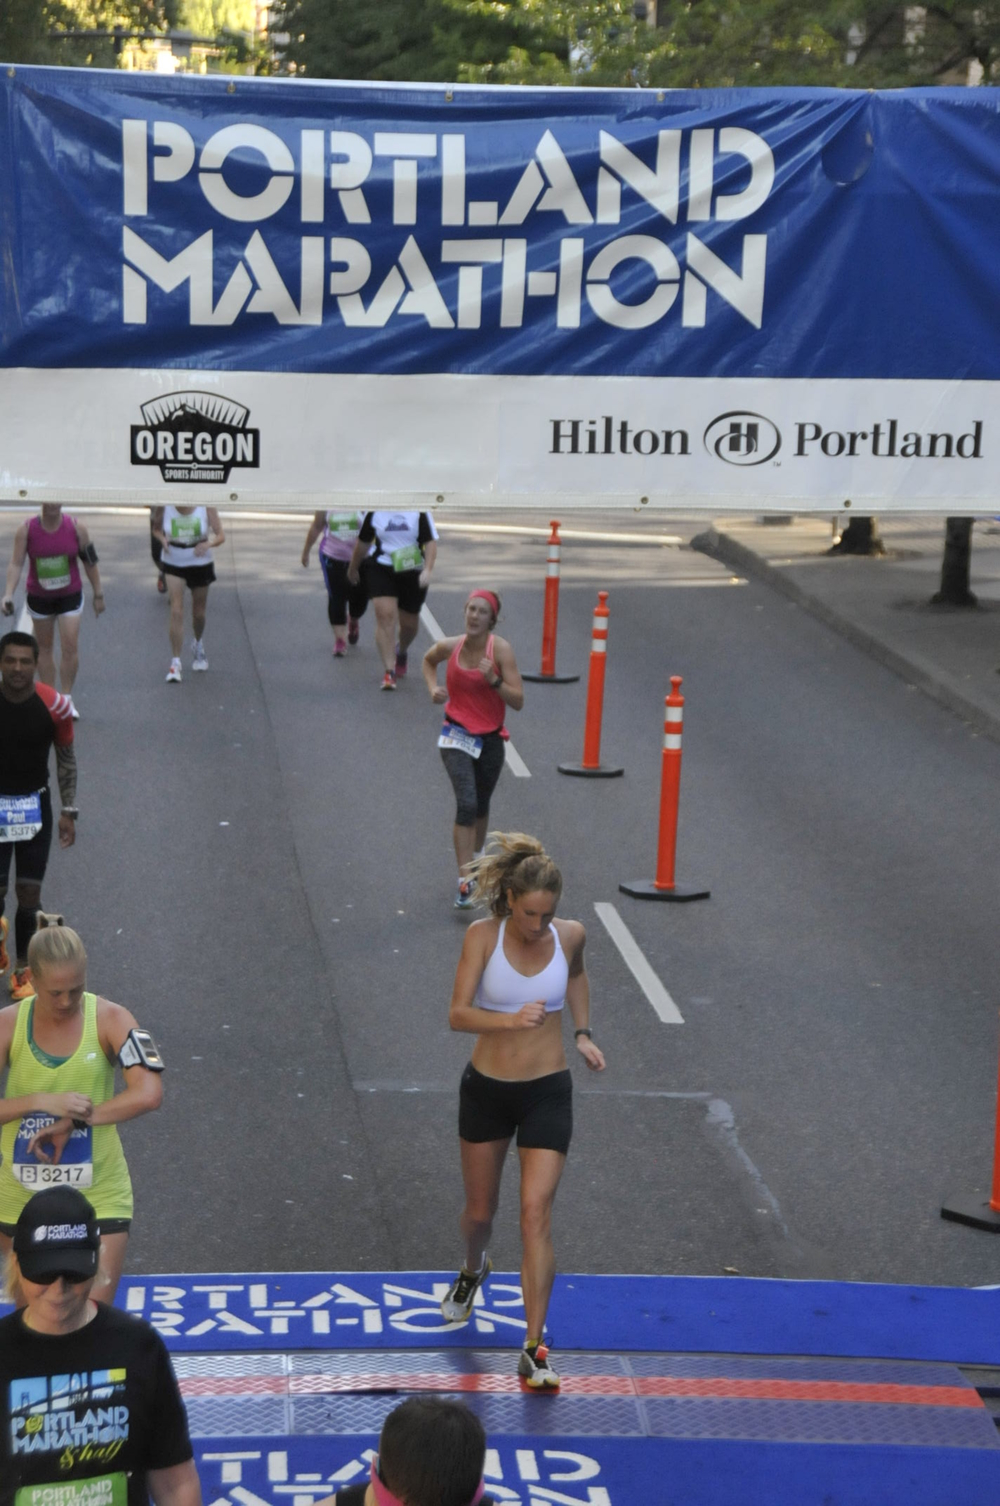 Lulu finishing strong at the Portland Marathon.